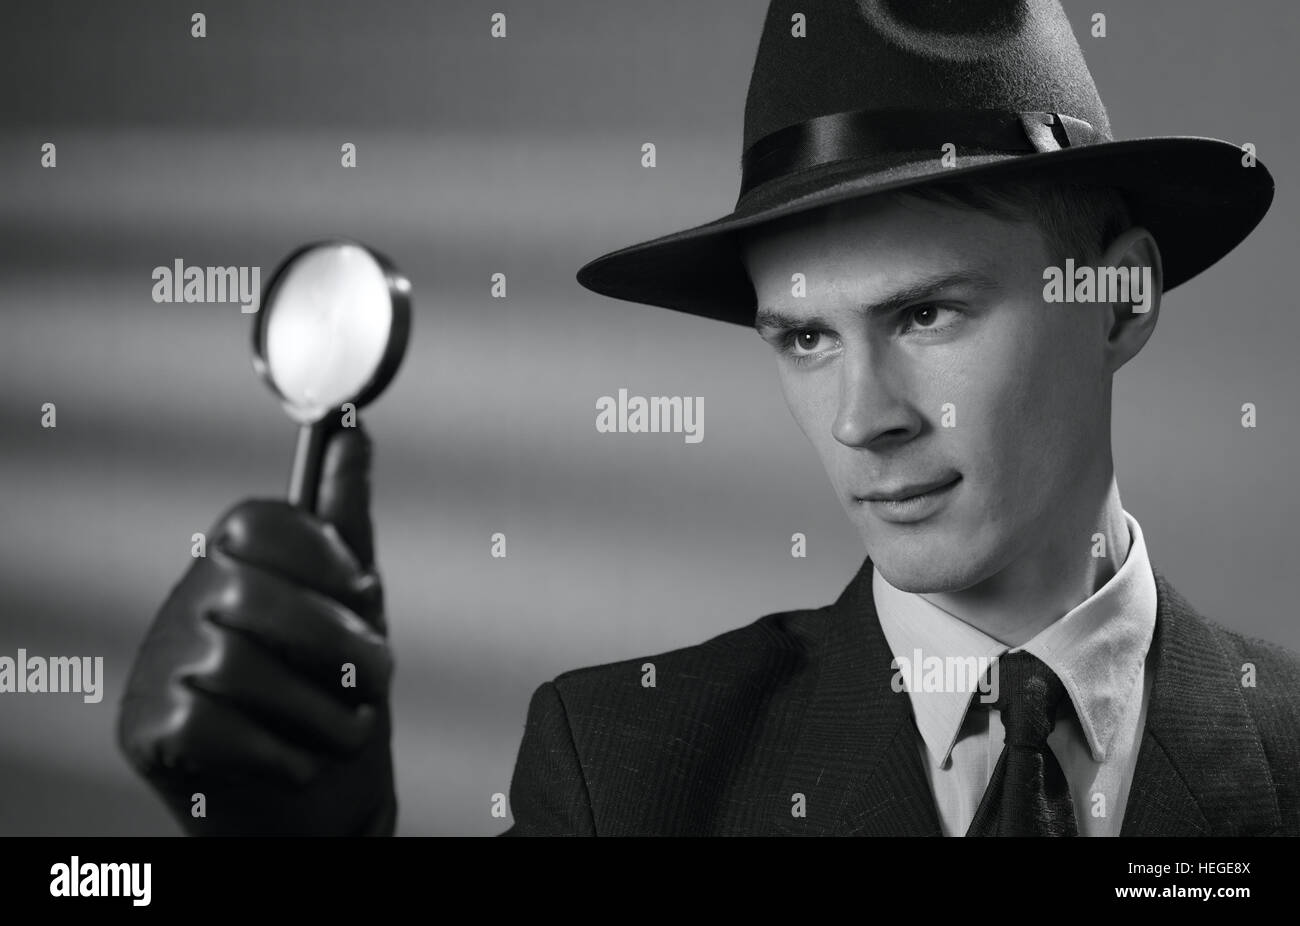 Handsome young vintage detective wearing a hat holding a magnifying glass in his gloved hand as he searches for - Stock Image